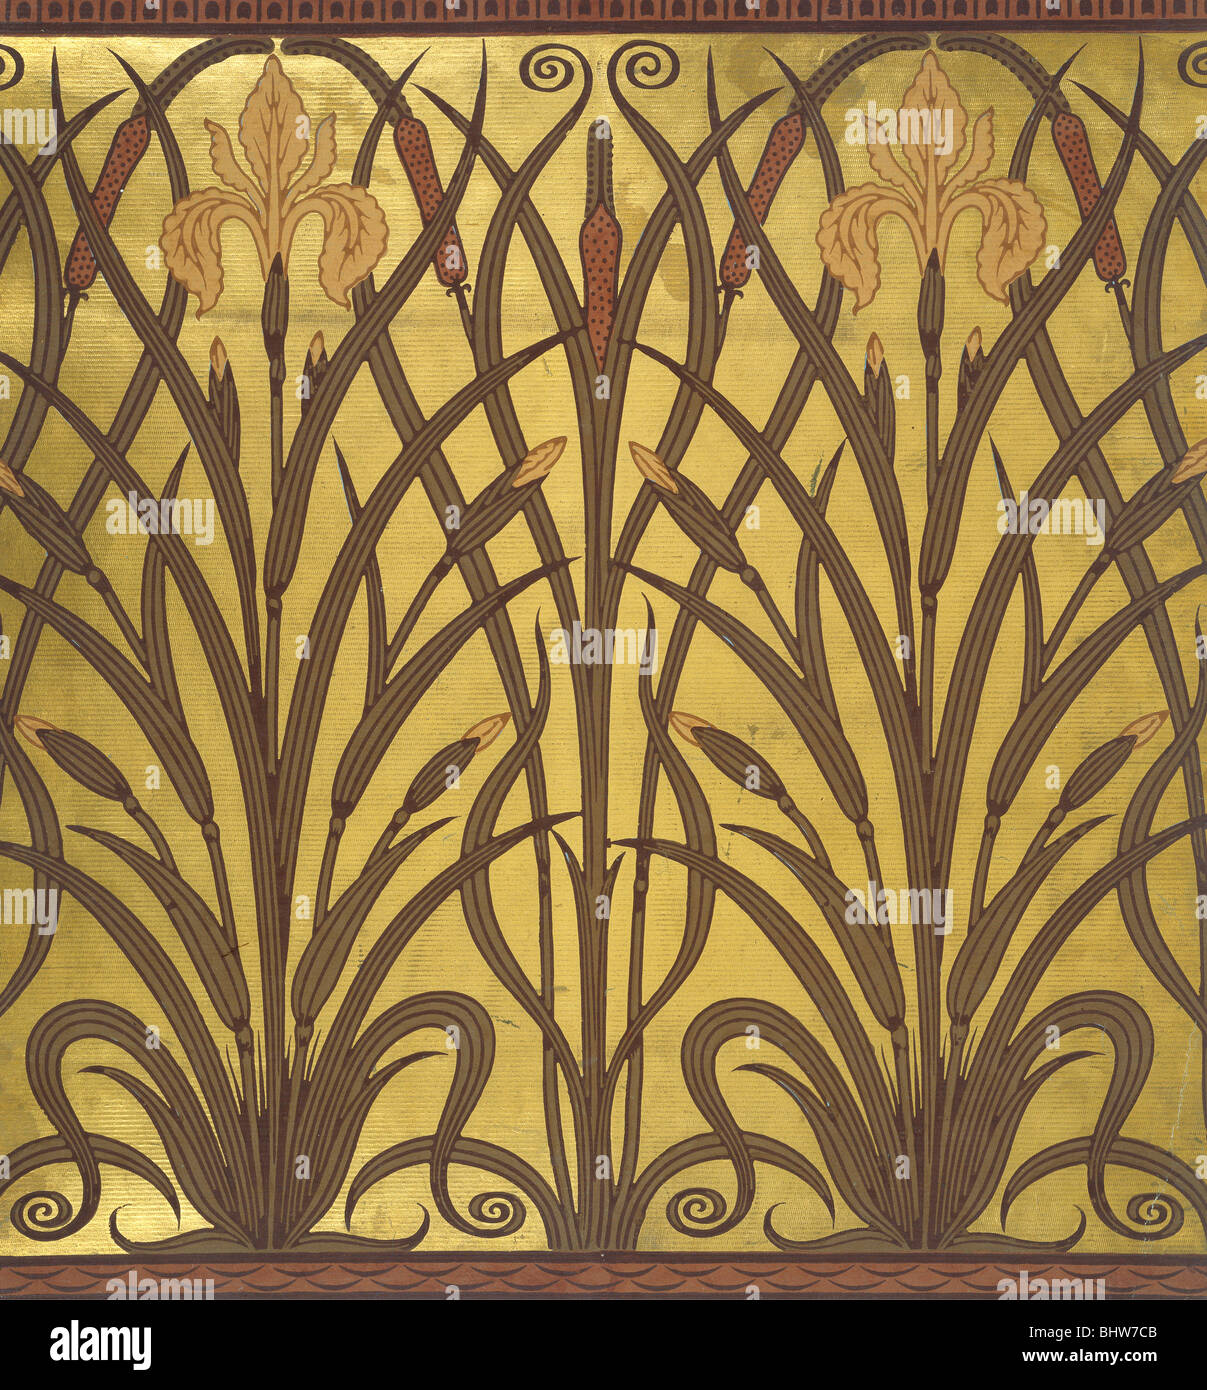 Wallpaper Art Nouveau Stock Photos & Wallpaper Art Nouveau Stock ...